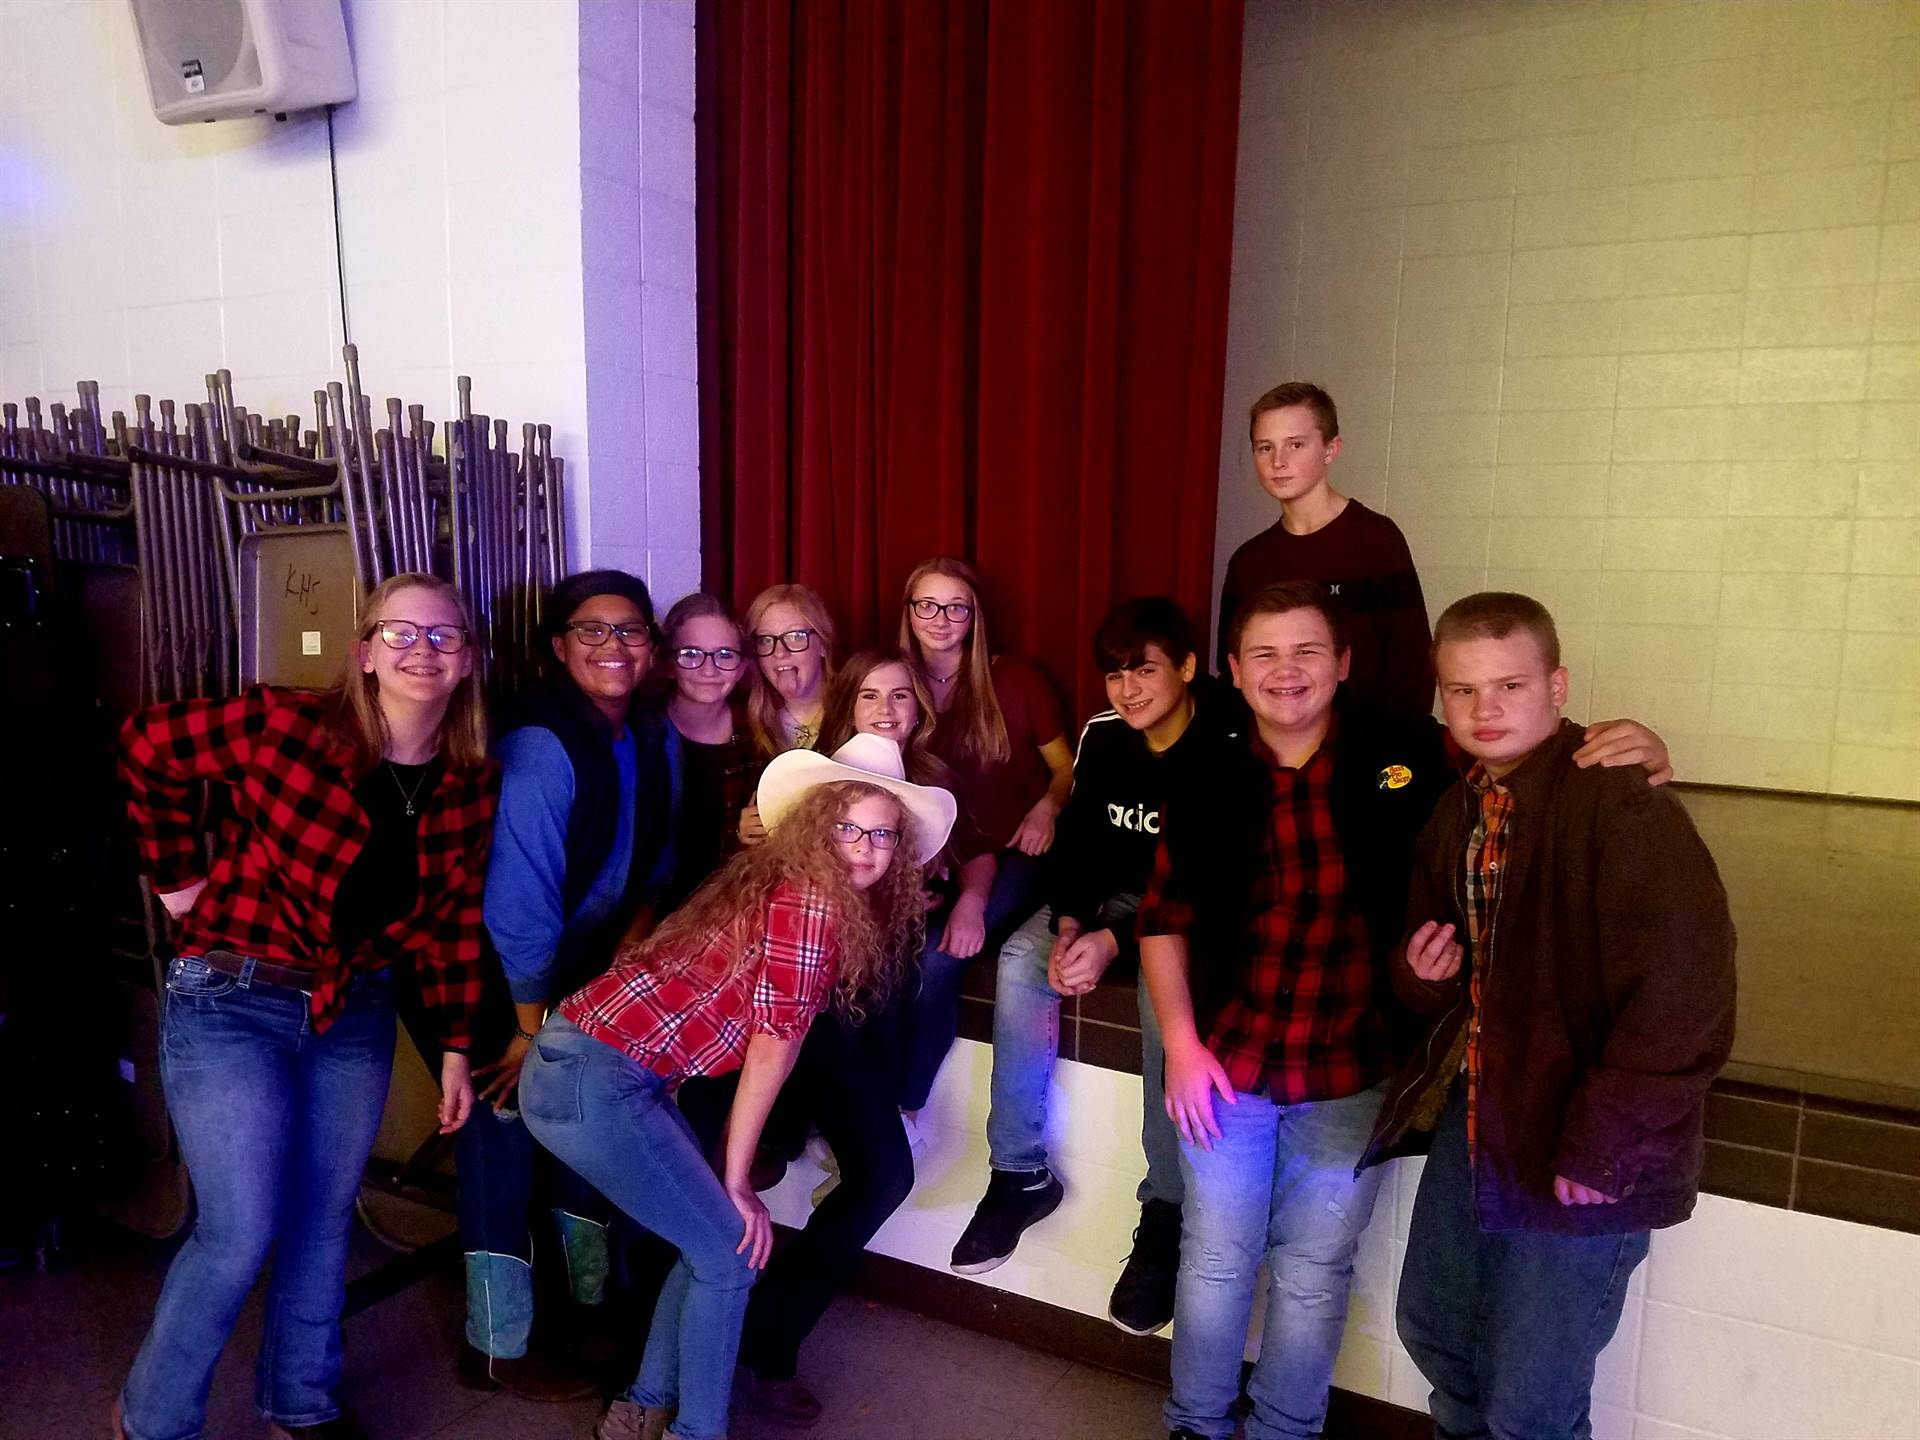 MS STUCO Boot Scootin' Boogie Dance